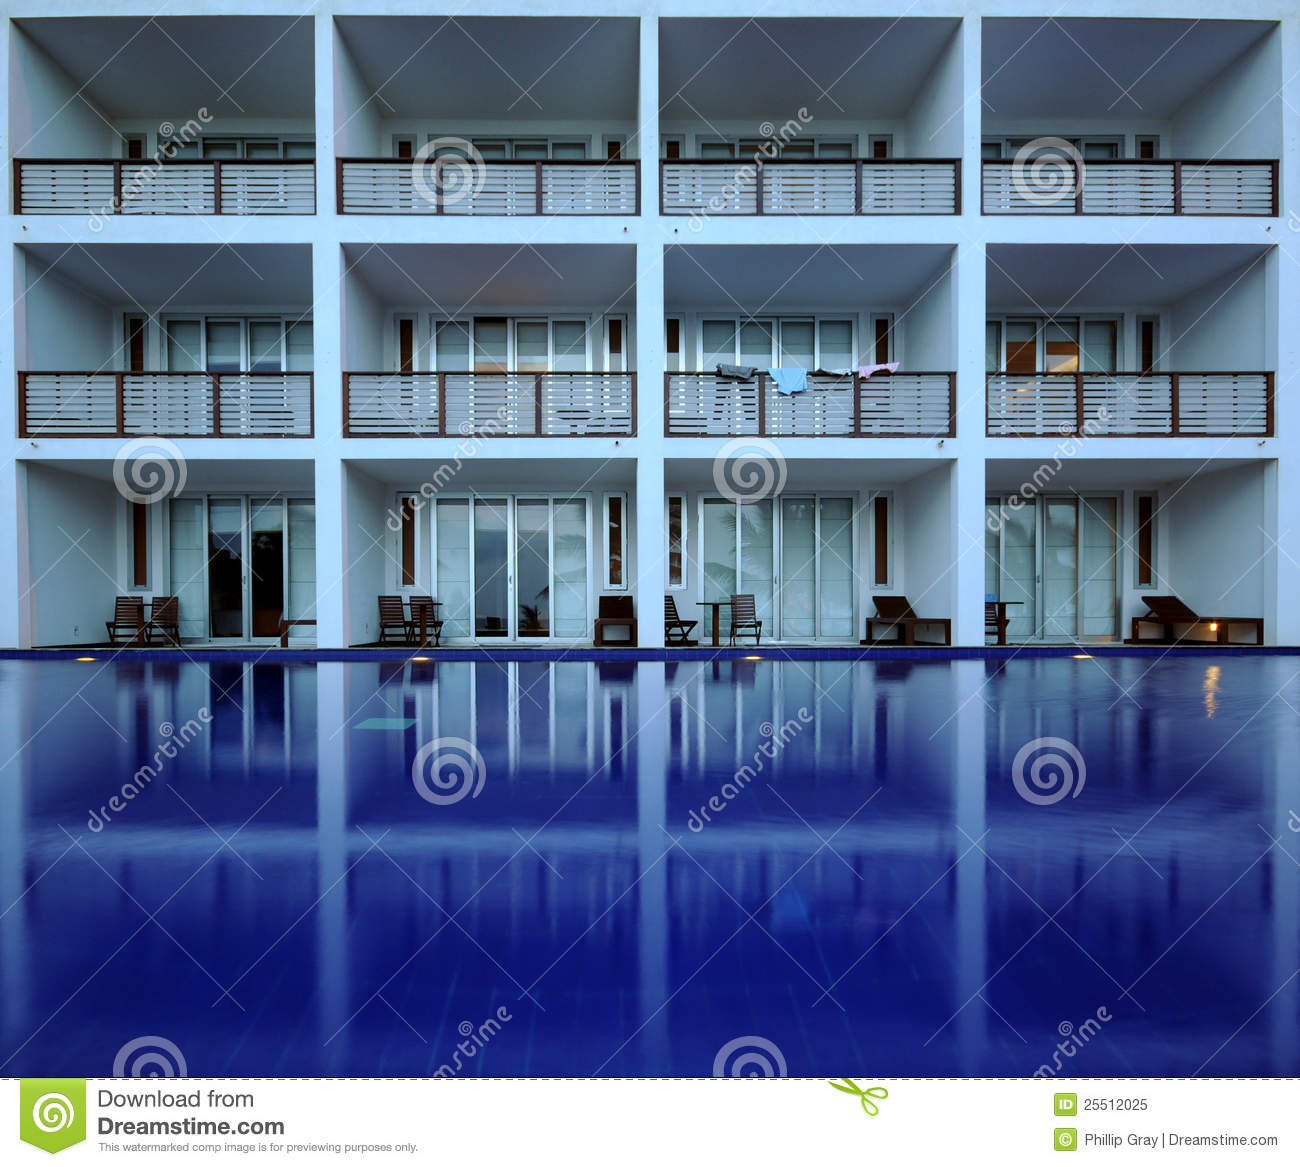 Hotel pool balcony royalty free stock photo image 25512025 for Hotels with balconies